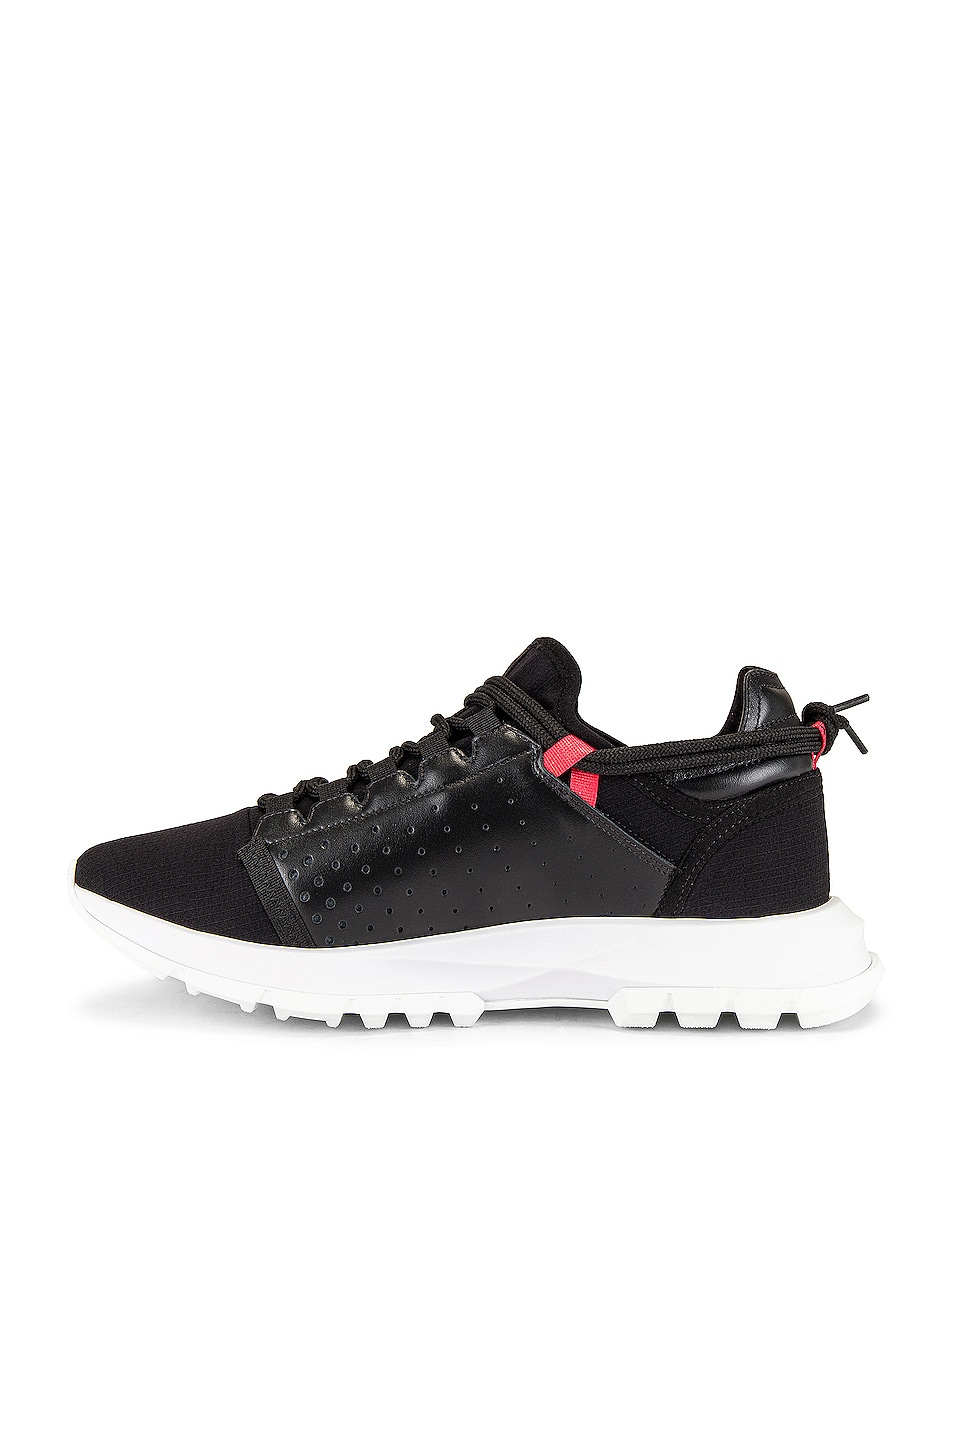 Image 5 of Givenchy Spectre Low Top Sneaker in Black